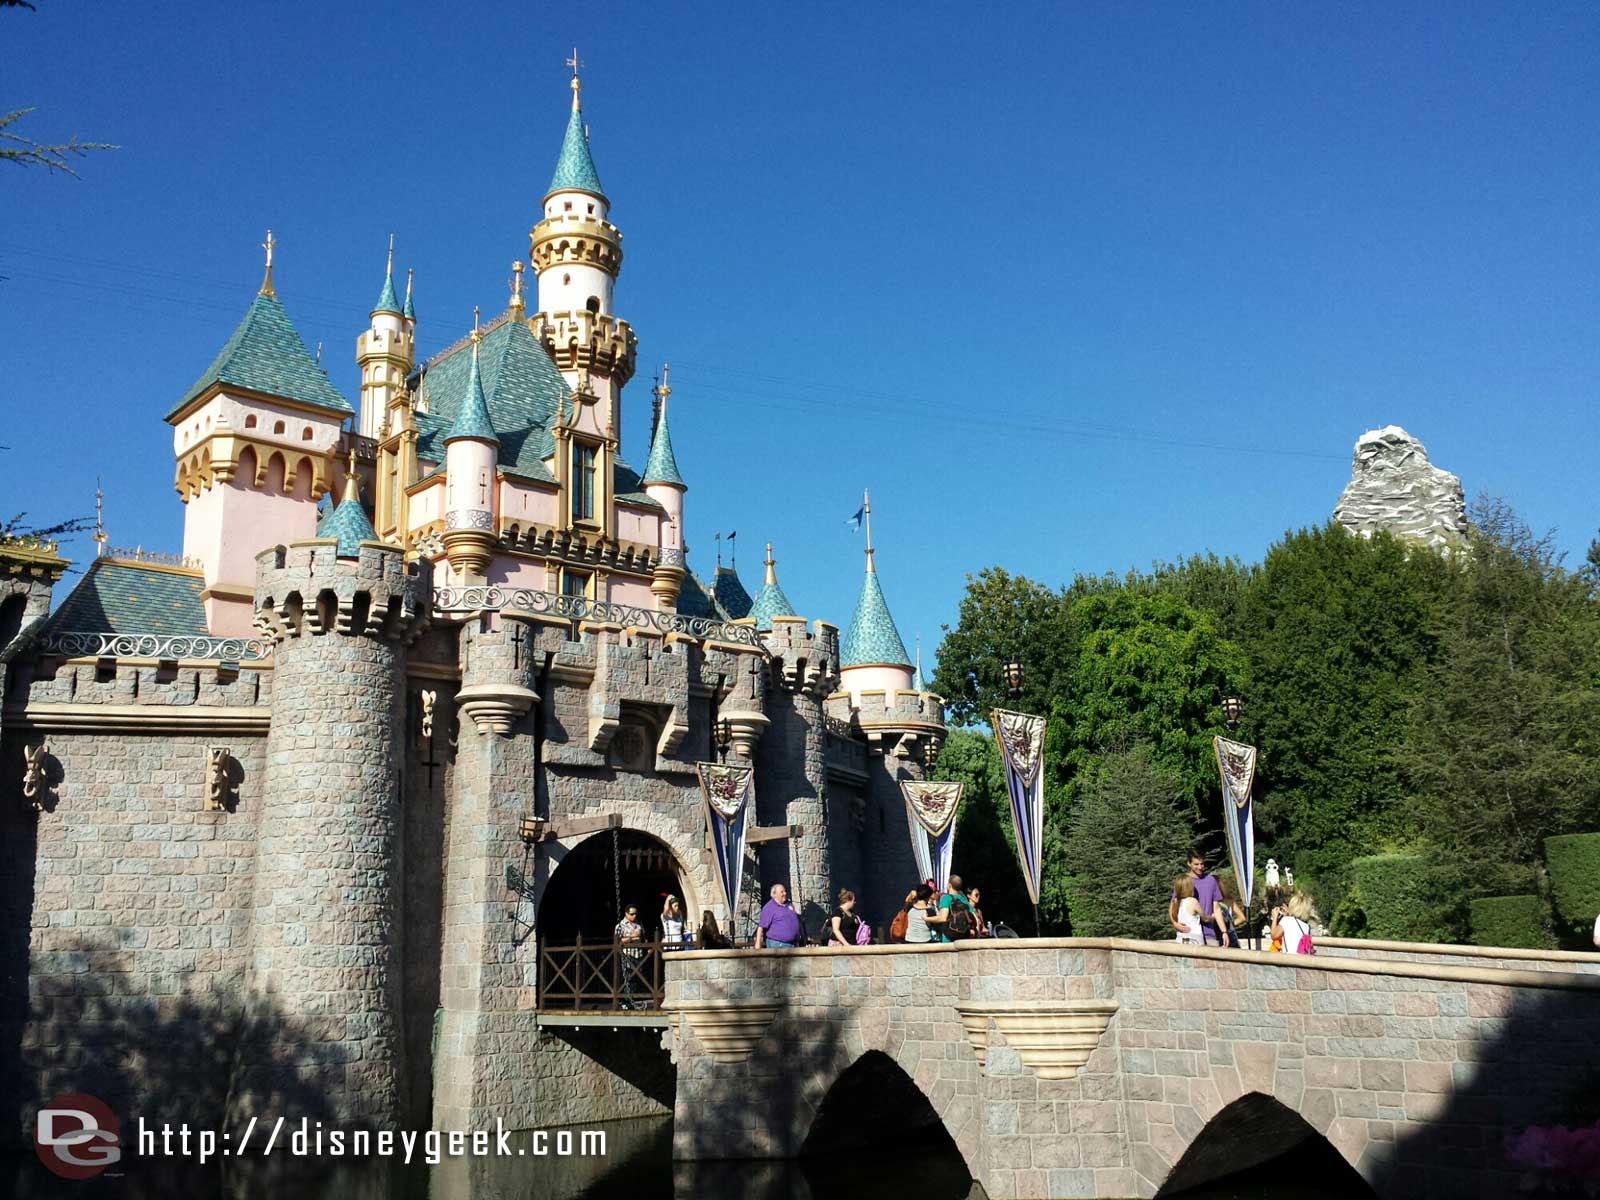 This view of Sleeping Beauty Castle will be changing with the railing being installed #Disneyland